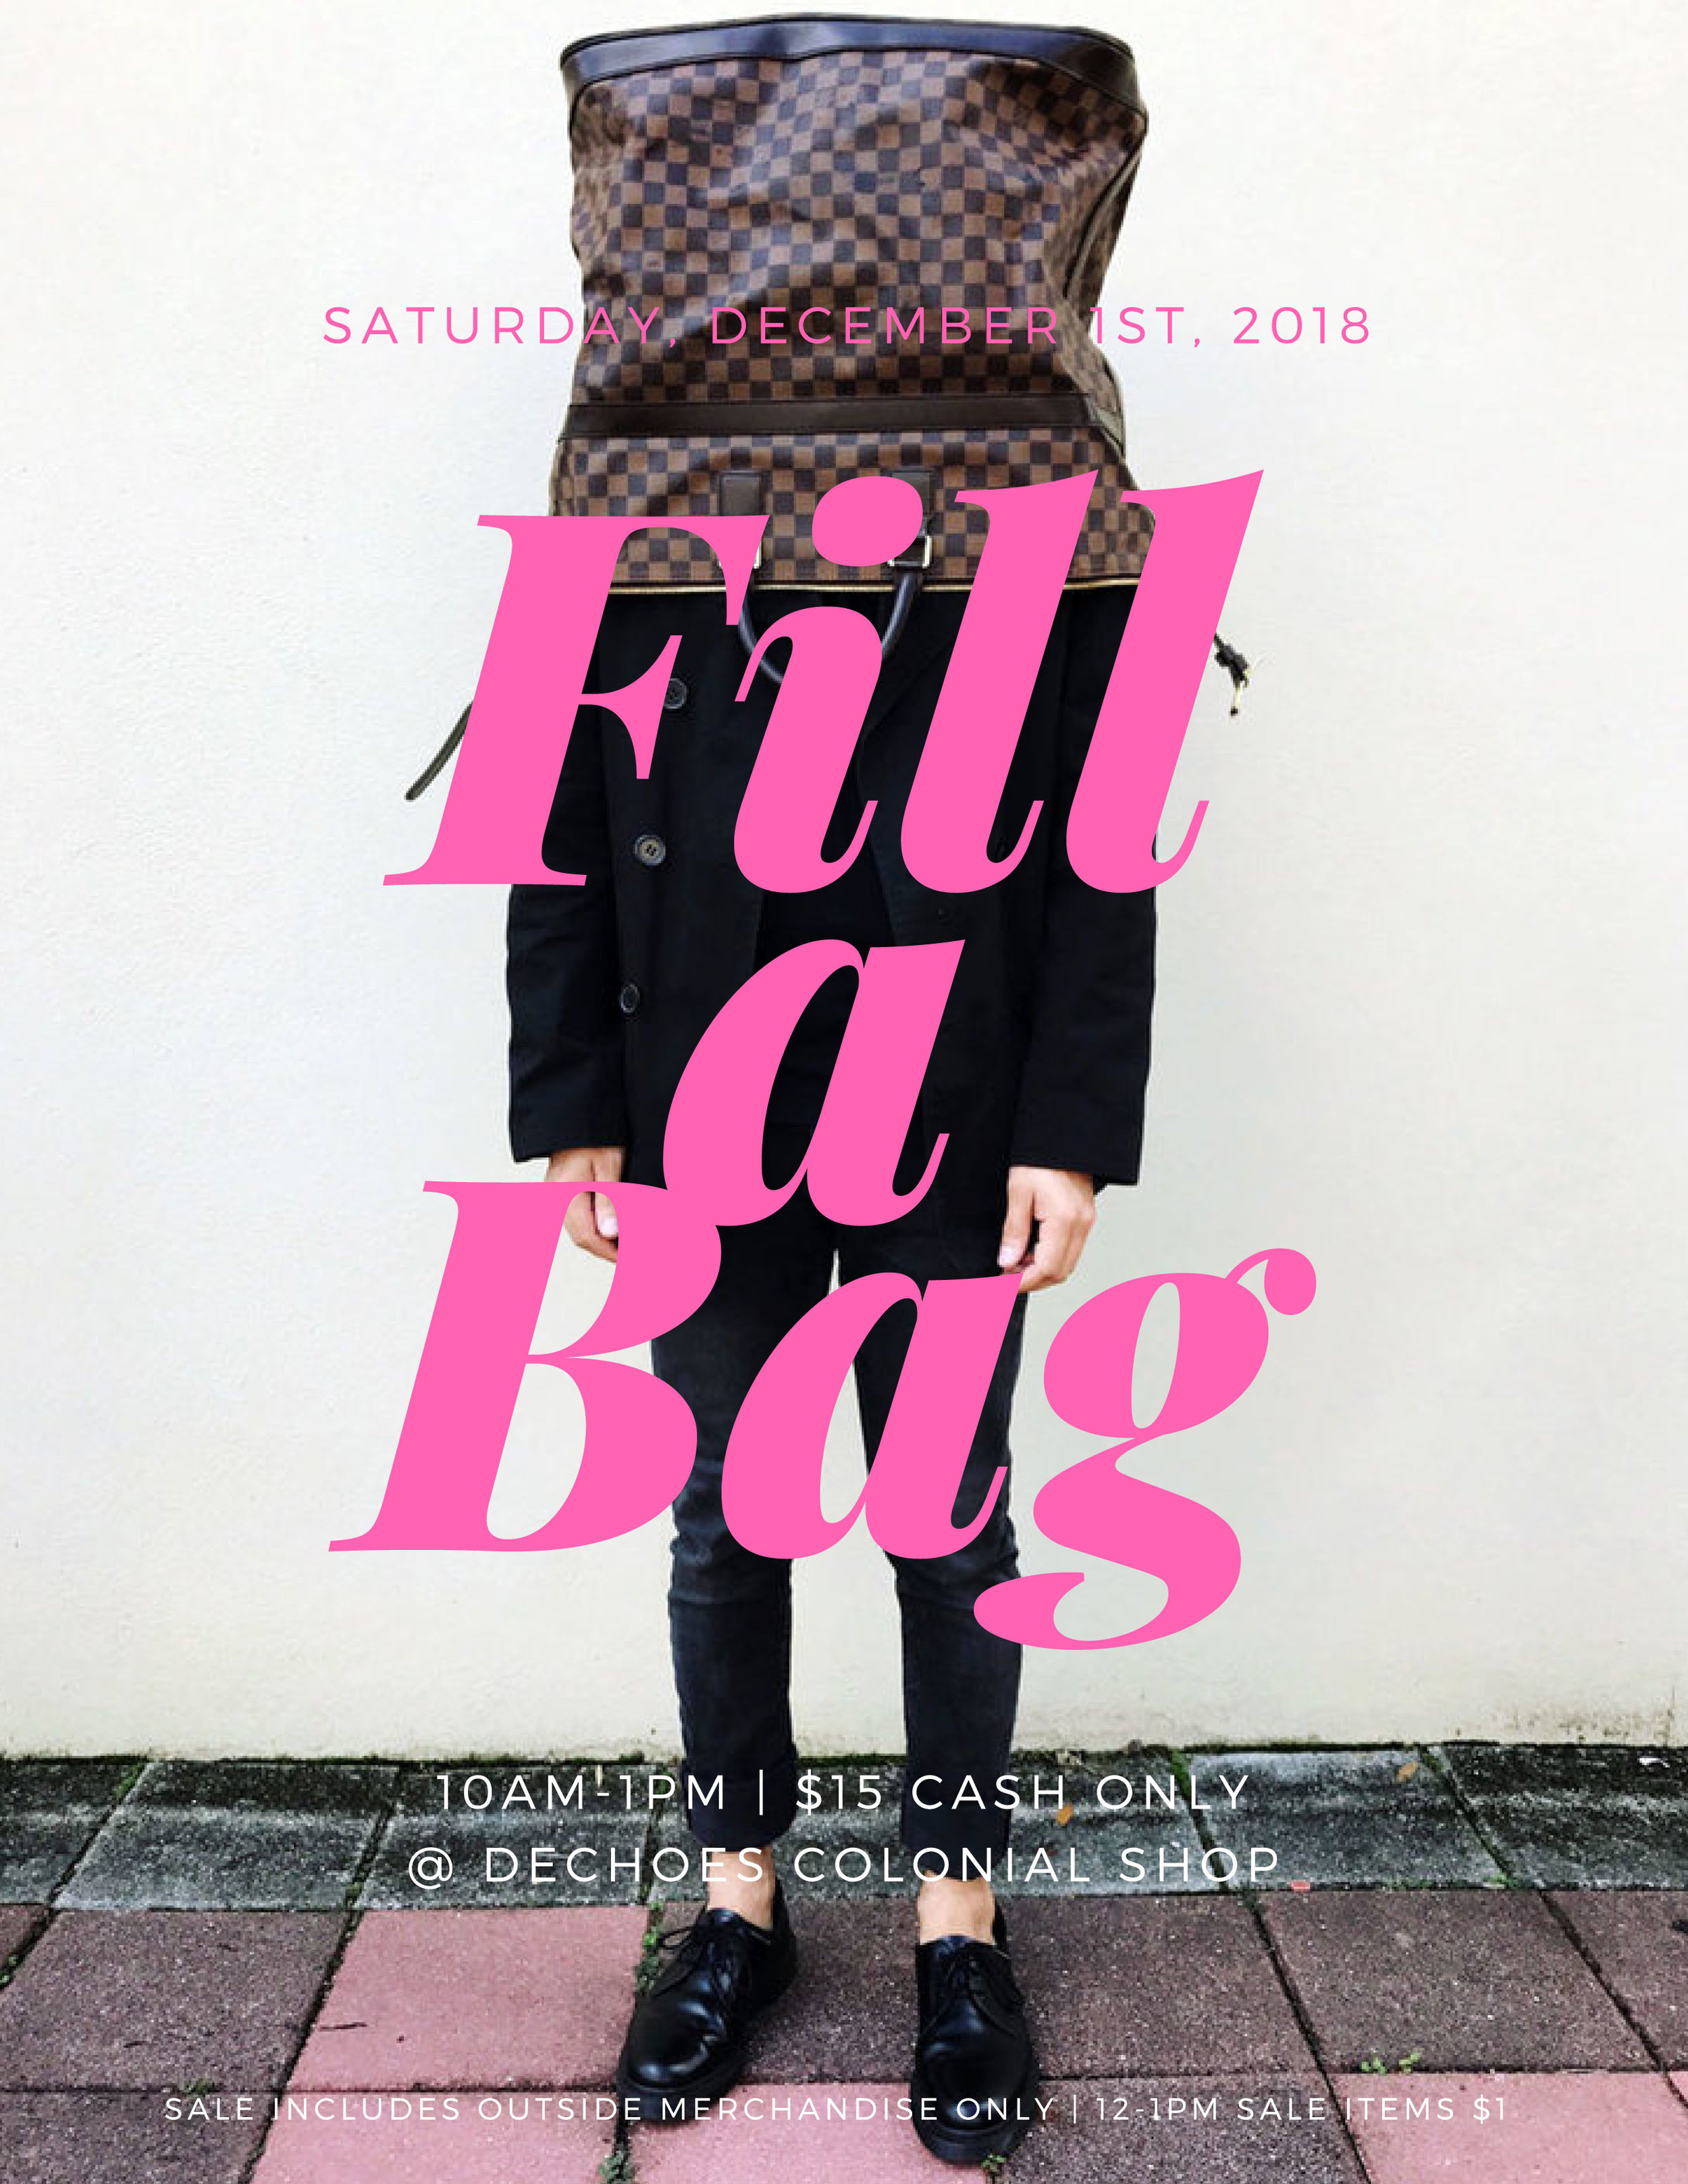 We open at 9AM bright and early so you can shop and get your number for the line-up. Then, go crazy and stuff some bags! It's a bag sale :)